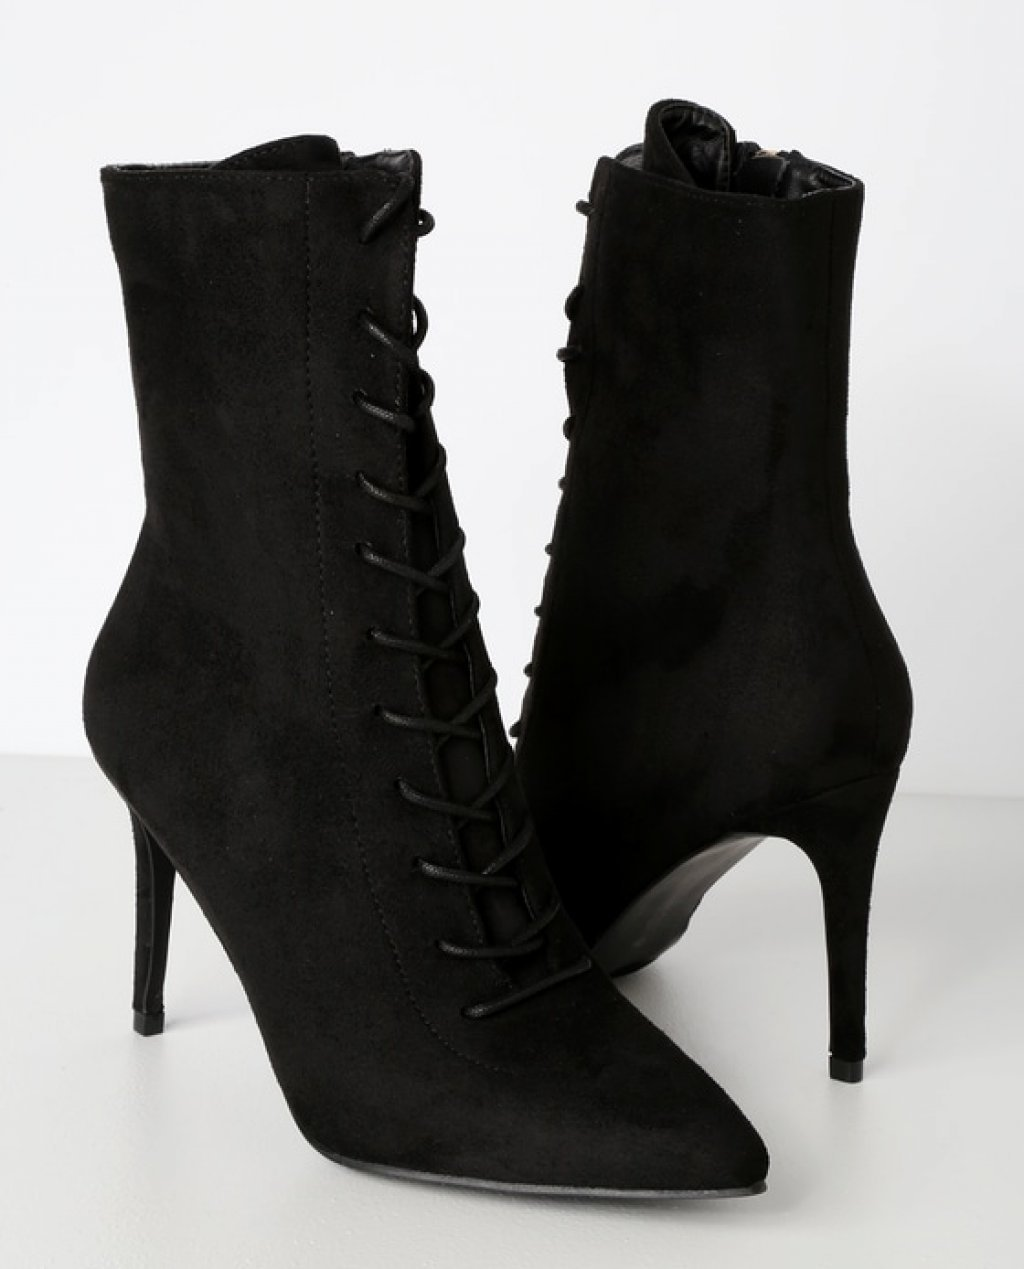 Daelyn Black Suede Lace-Up Mid-Calf Booties